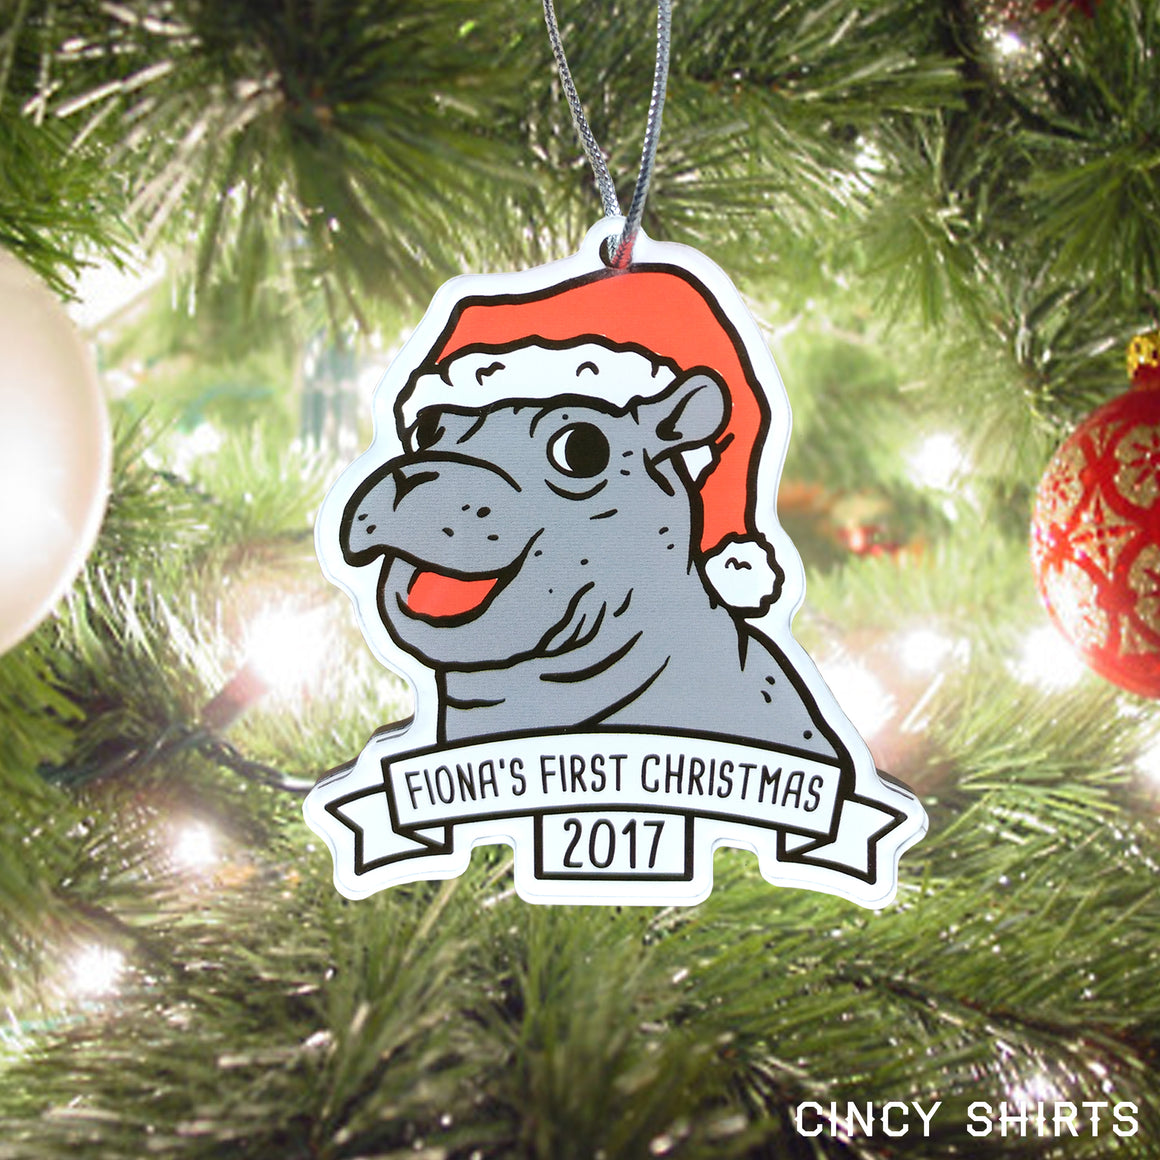 Fiona's First Christmas Ornament 2017